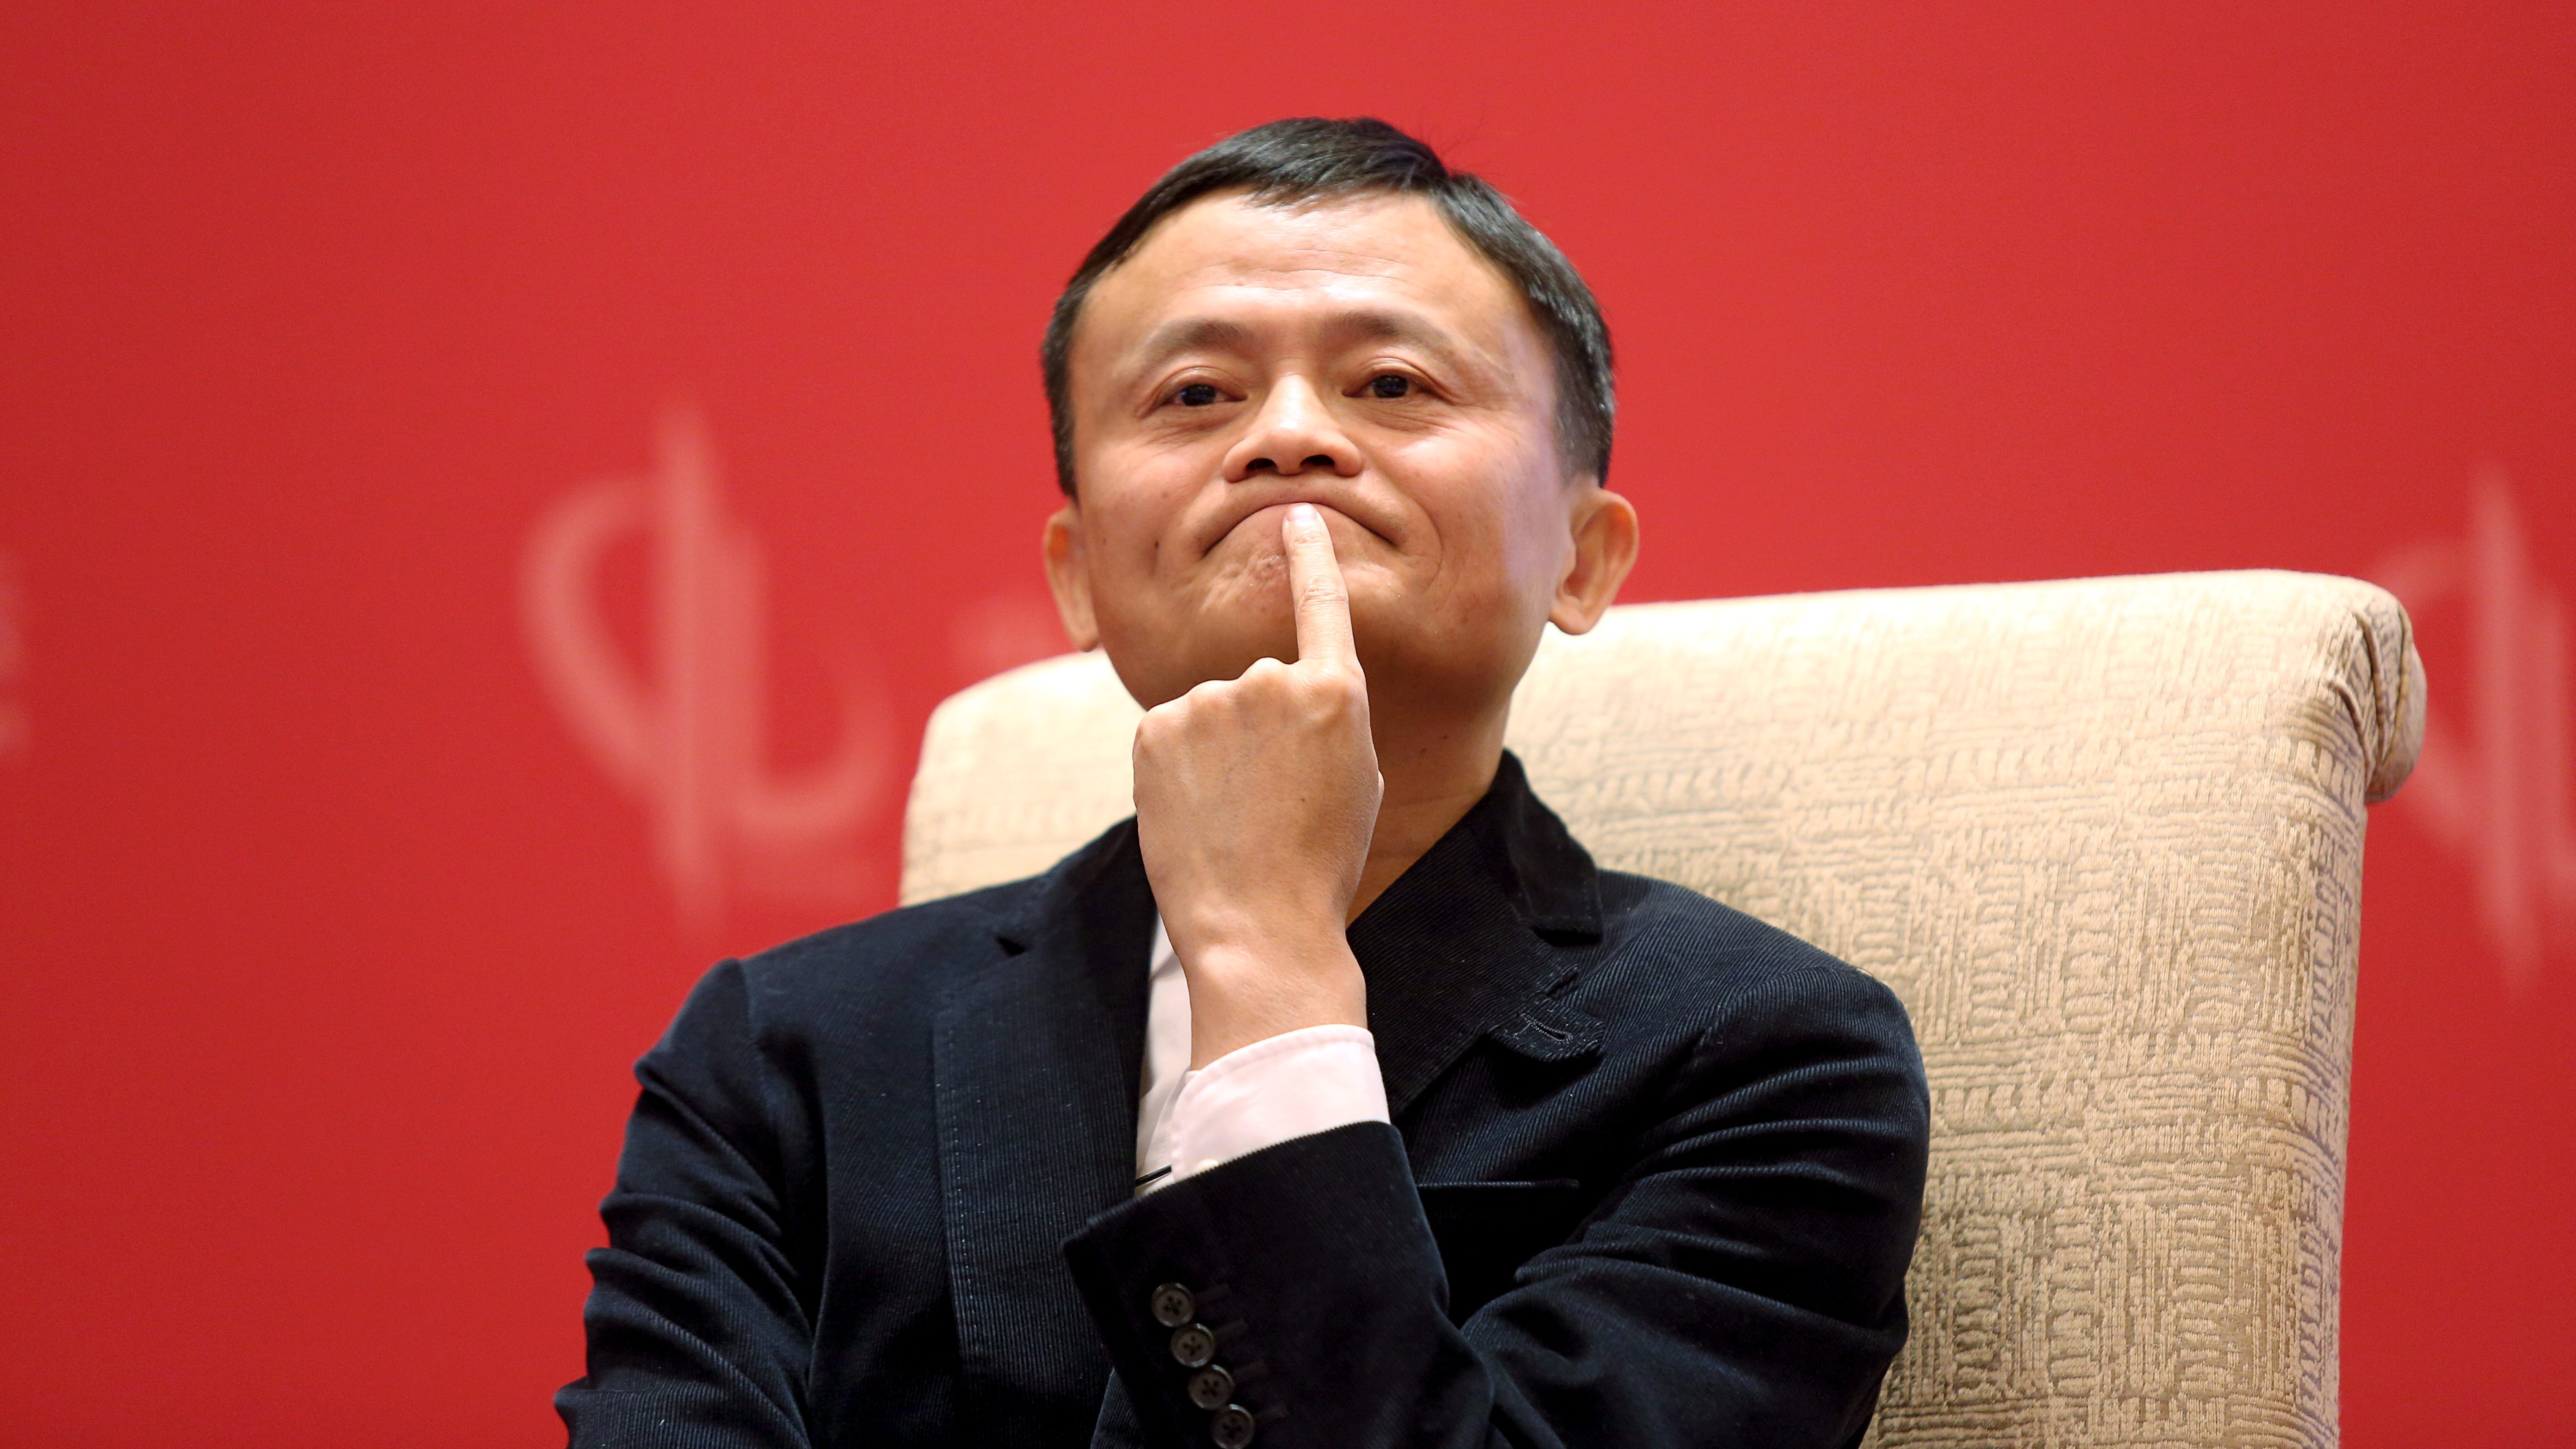 Founder and Executive Chairman of Alibaba Group Jack Ma meets Facebook founder and CEO Mark Zuckerberg (not pictured), at the China Development Forum in Beijing, China, March 19, 2016. REUTERS/Shu Zhang/File Photo - RTSERPQ